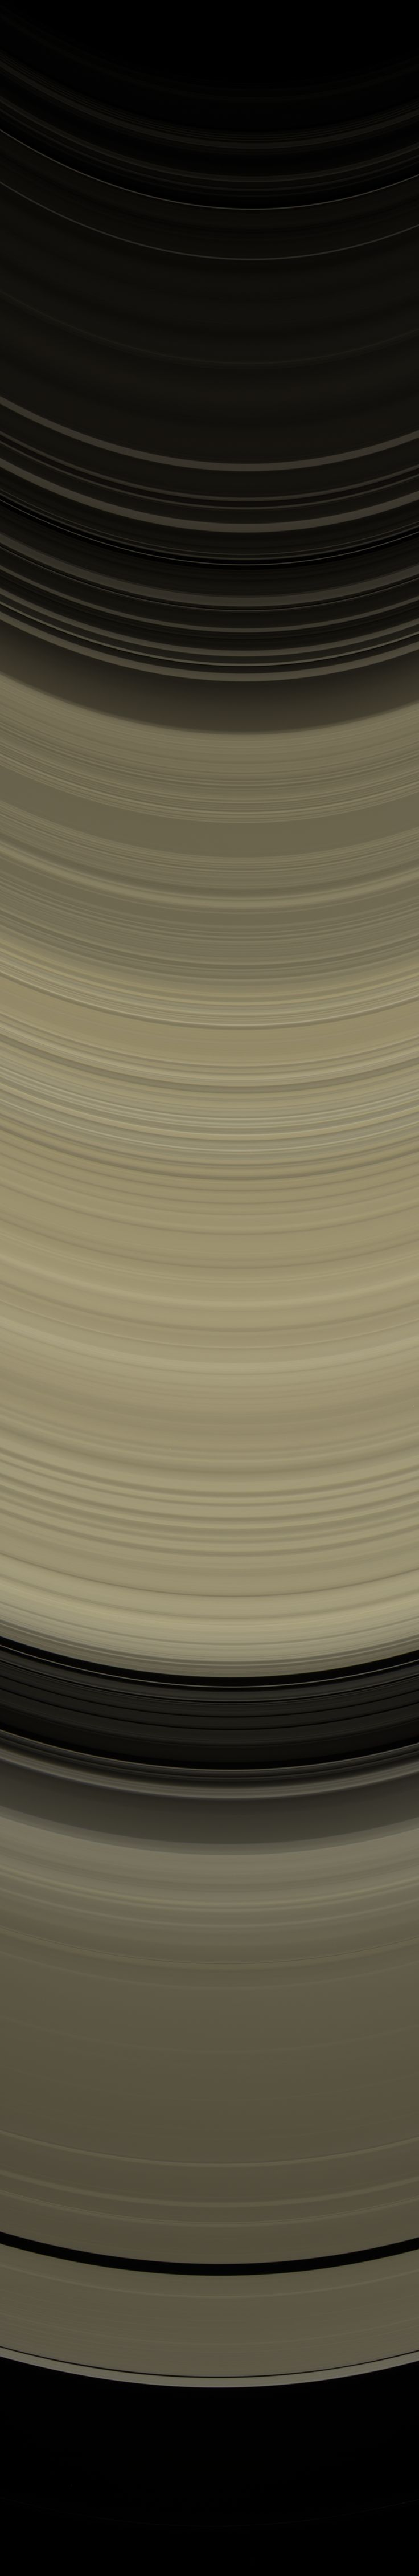 Panorama across the lit side of Saturn's rings, May 10, 2014  Cassini scanned across the full width of Saturn's ring system, from the C ring at top, through the B ring at center, to the A ring at bottom. It took seven narrow-angle camera footprints to cover the breadth of the rings. The images are enlarged 150% from their original resolution.